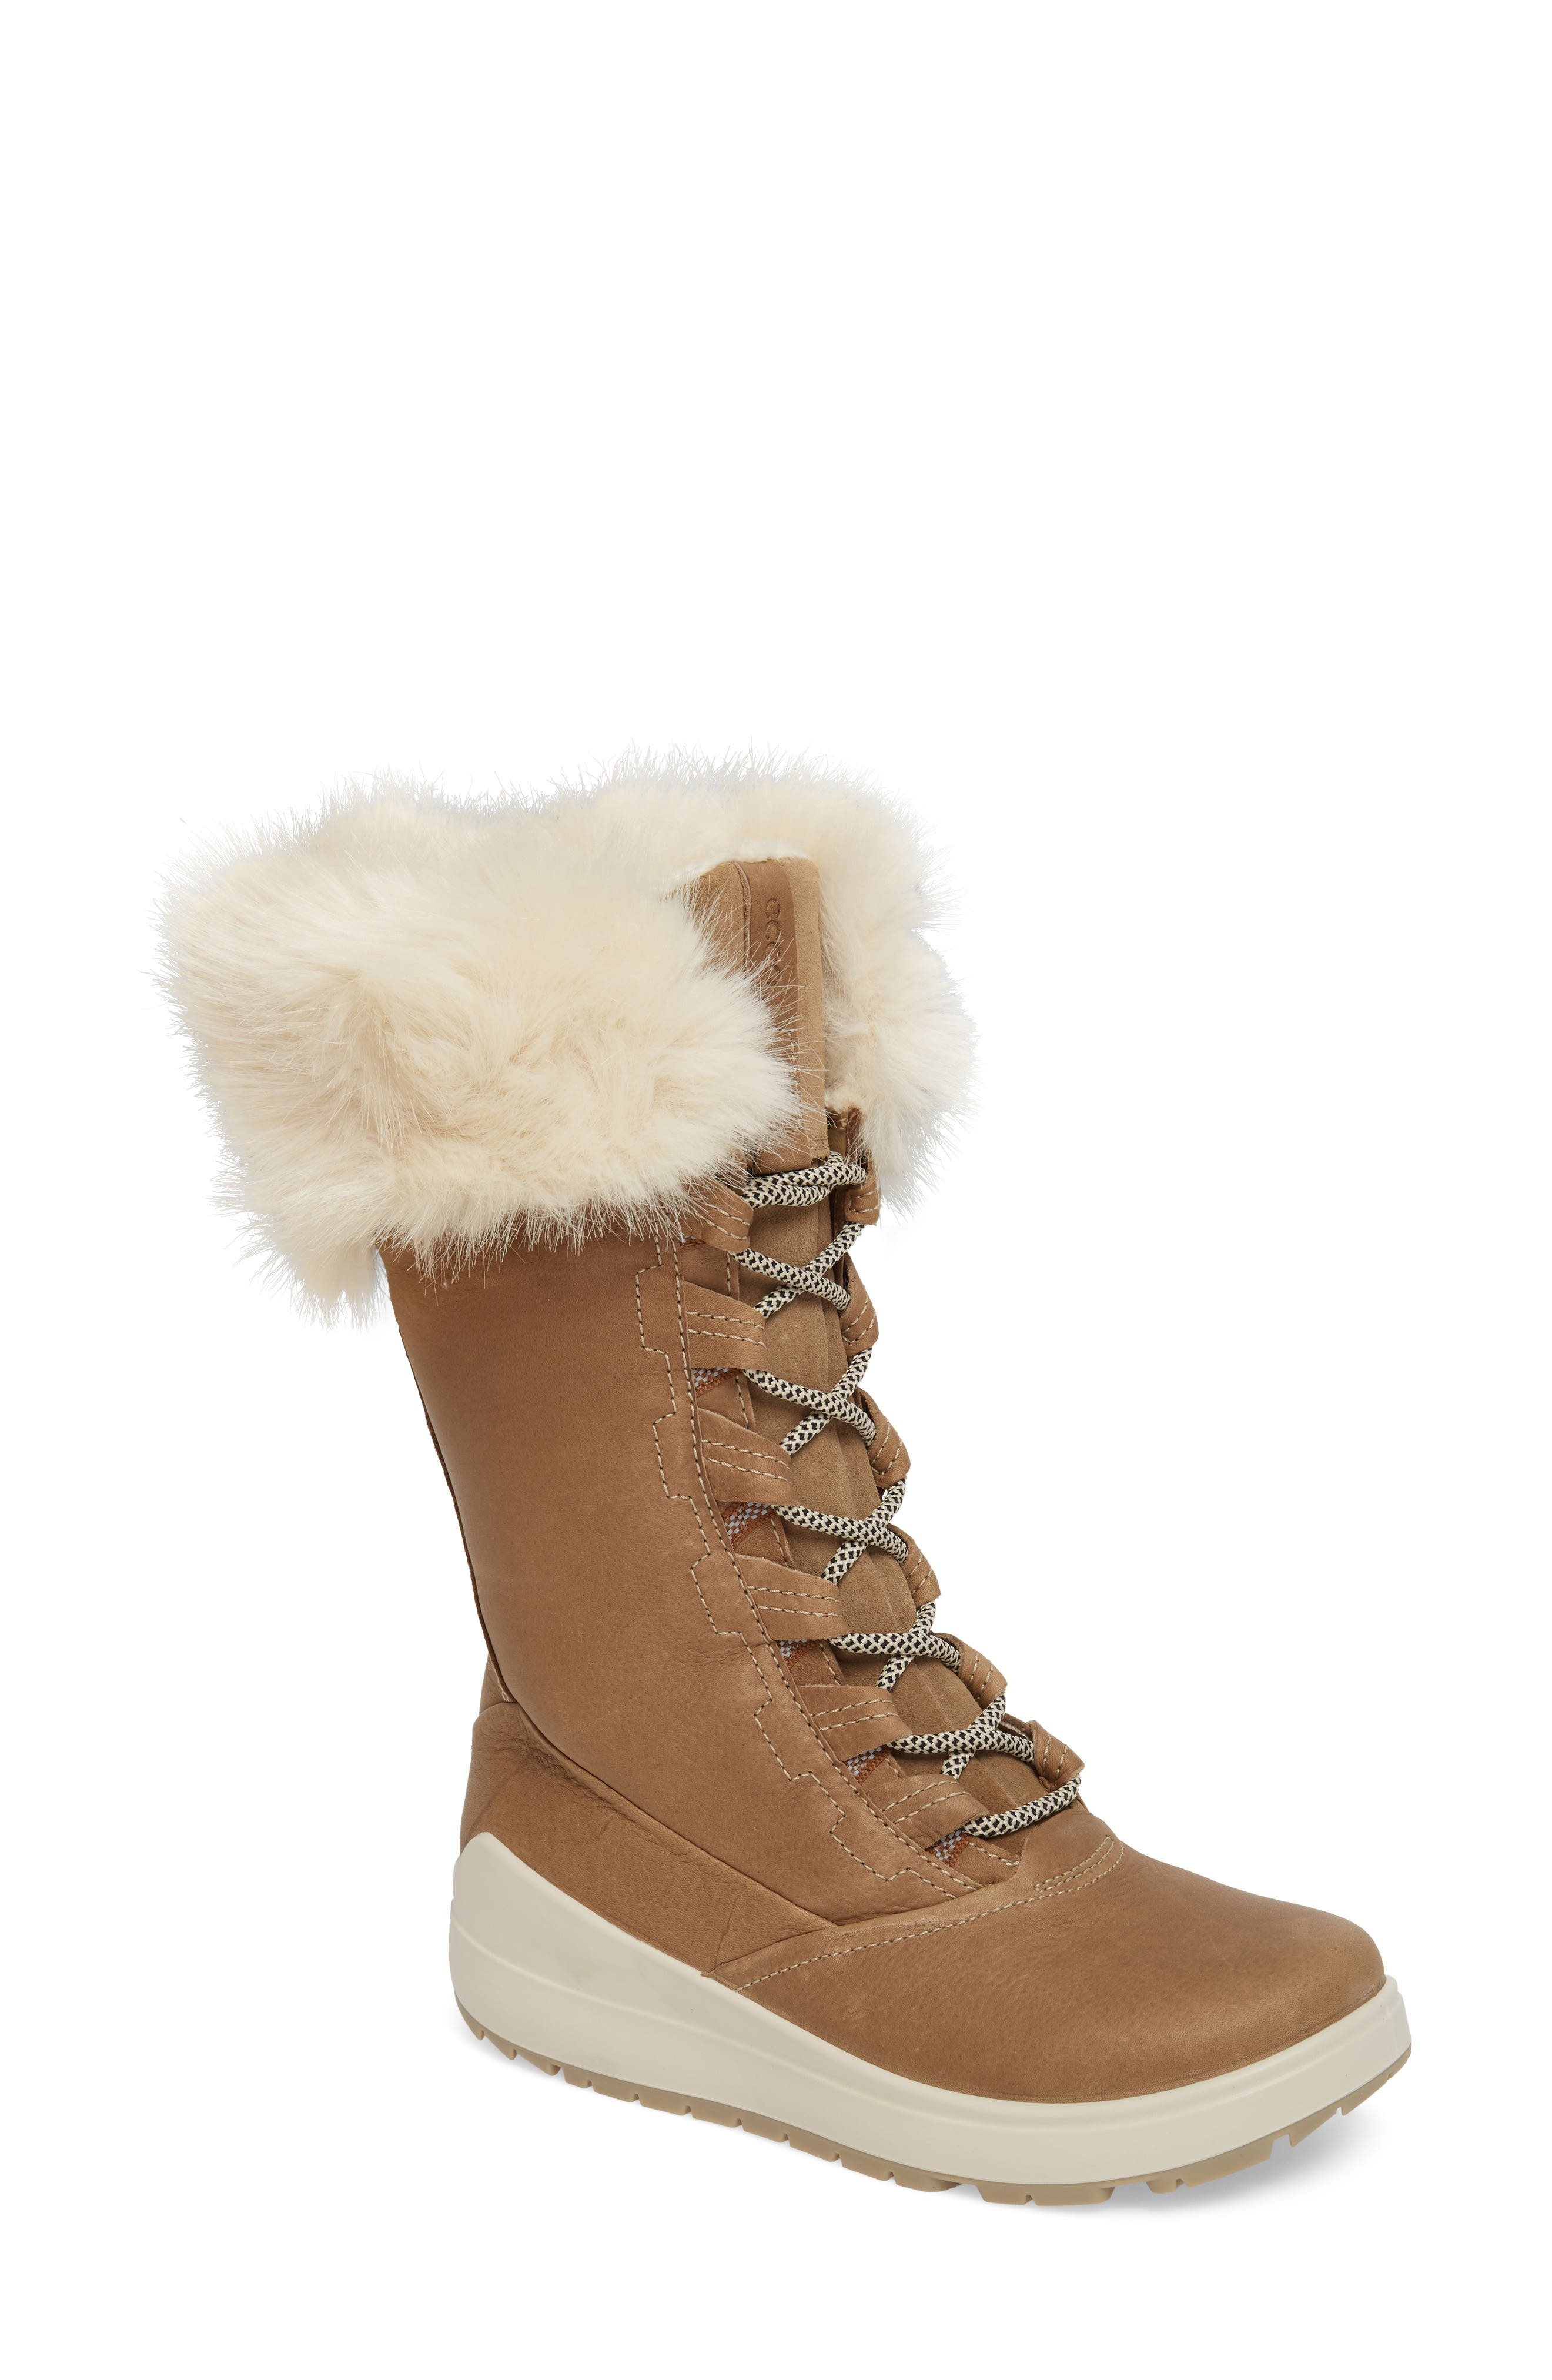 Alternate Image 1 Selected - ECCO Noyce Siberia Hydromax Water Resistant Winter Boot with Faux Fur Trim (Women)